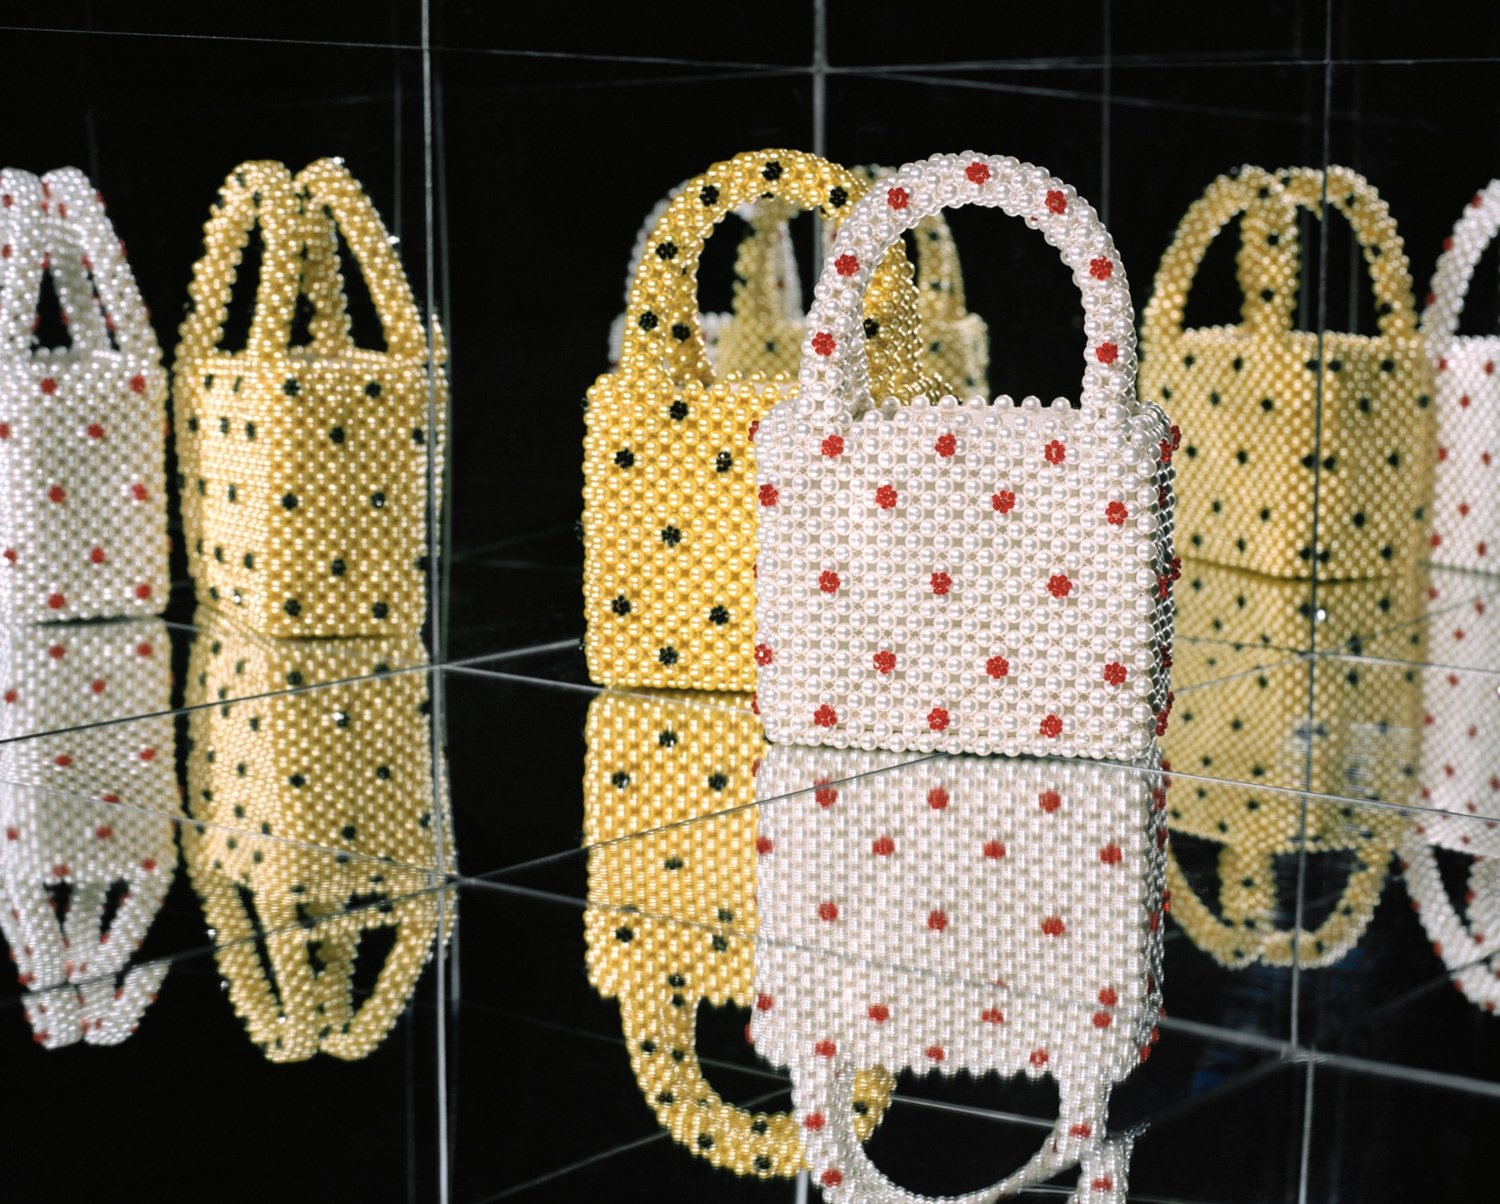 Shrimps pearl handbags